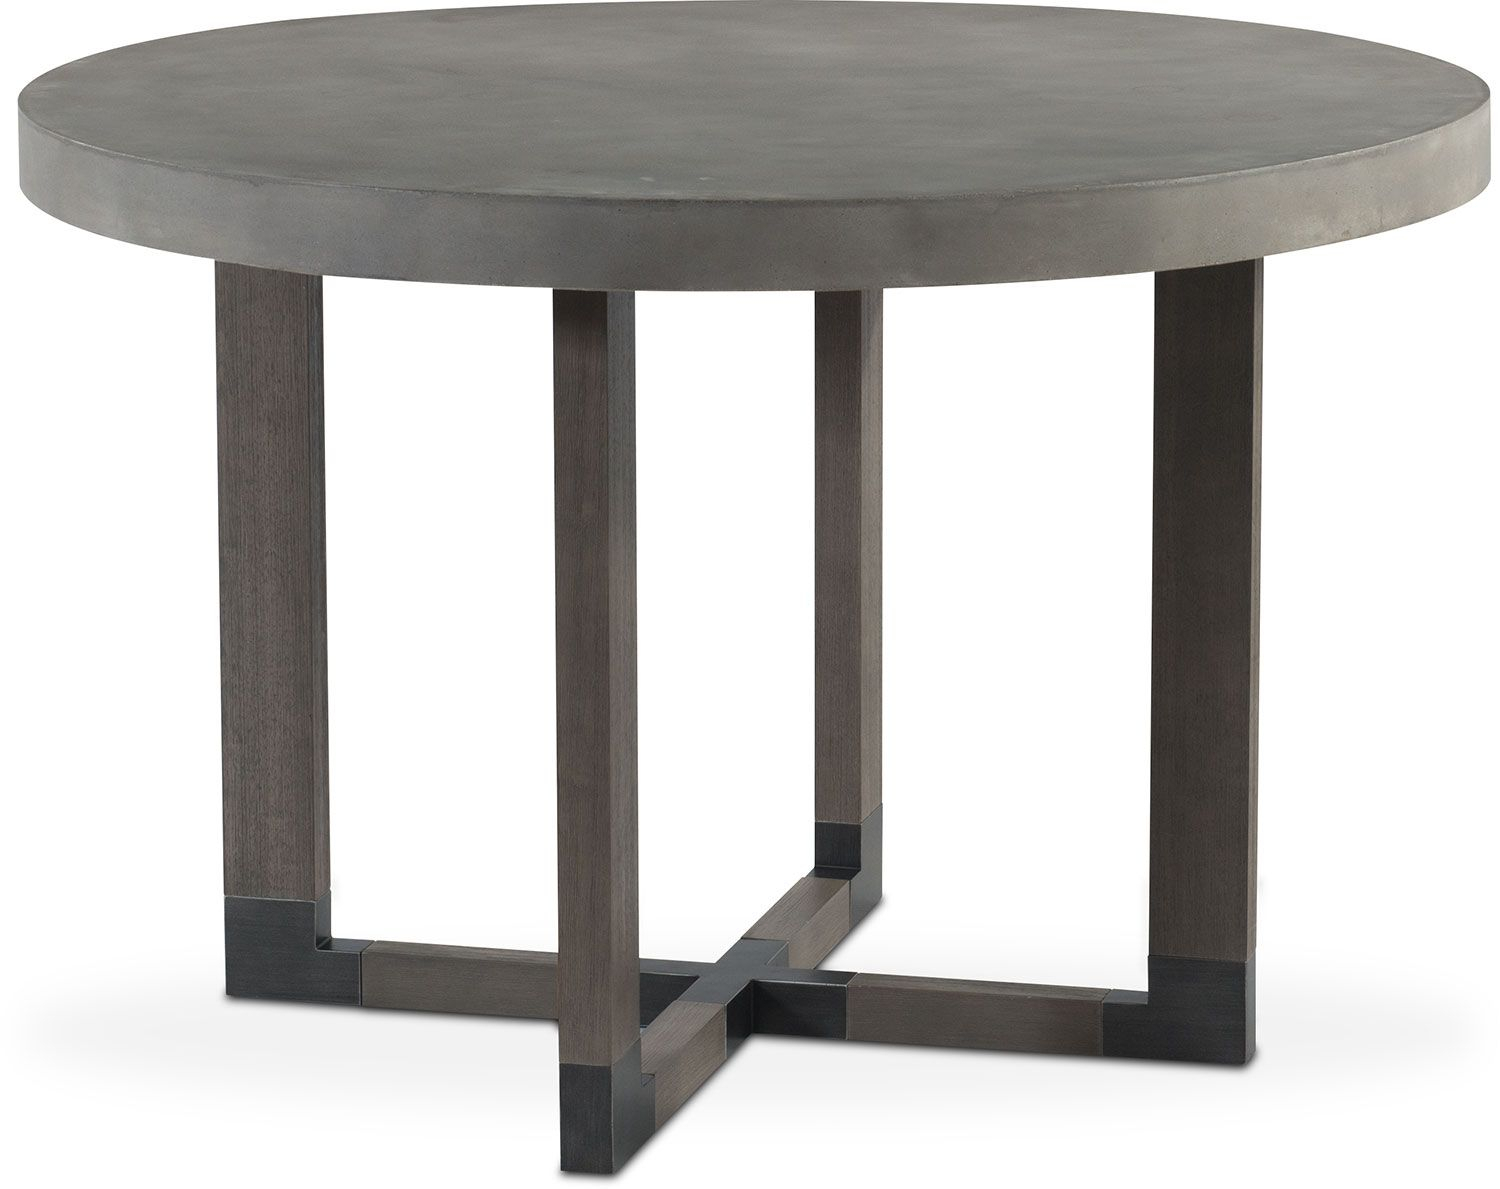 Malibu Round Counter Height Concrete Top Table – Gray Within Recent James Adjustables Height Extending Dining Tables (Image 16 of 25)